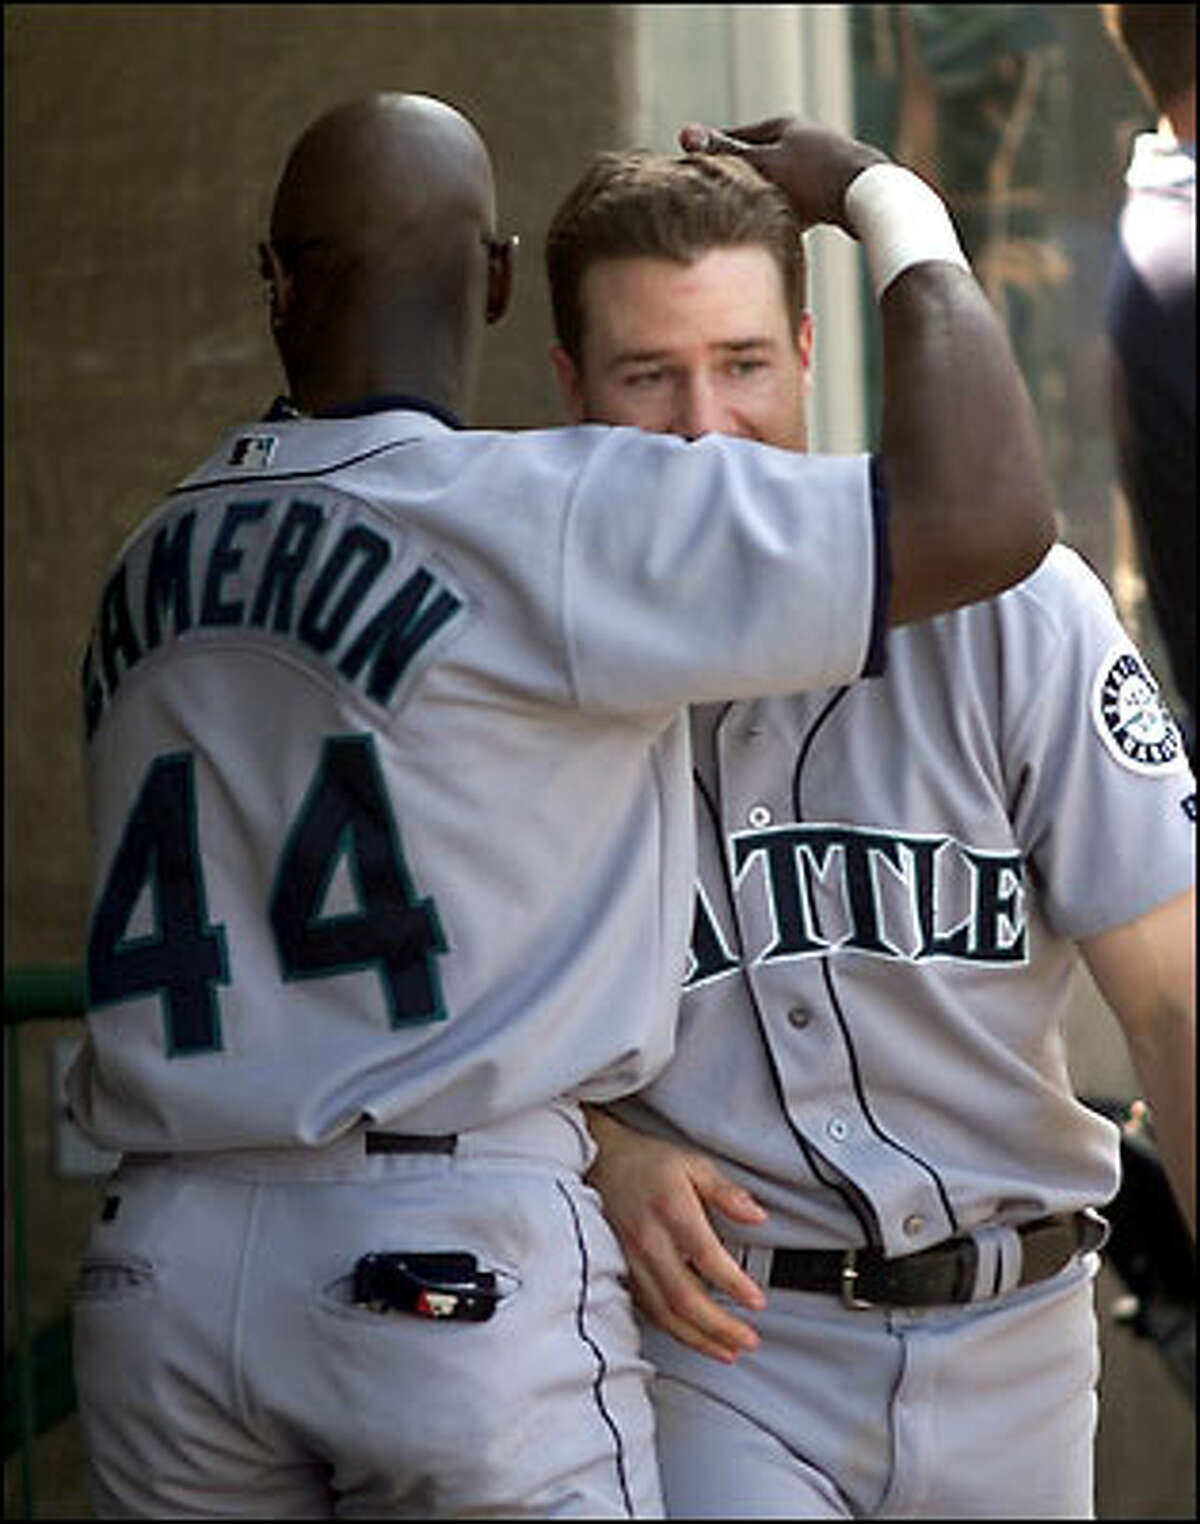 David Bell's go-ahead homer in the 7th is worth an embrace from teammate Mike Cameron.